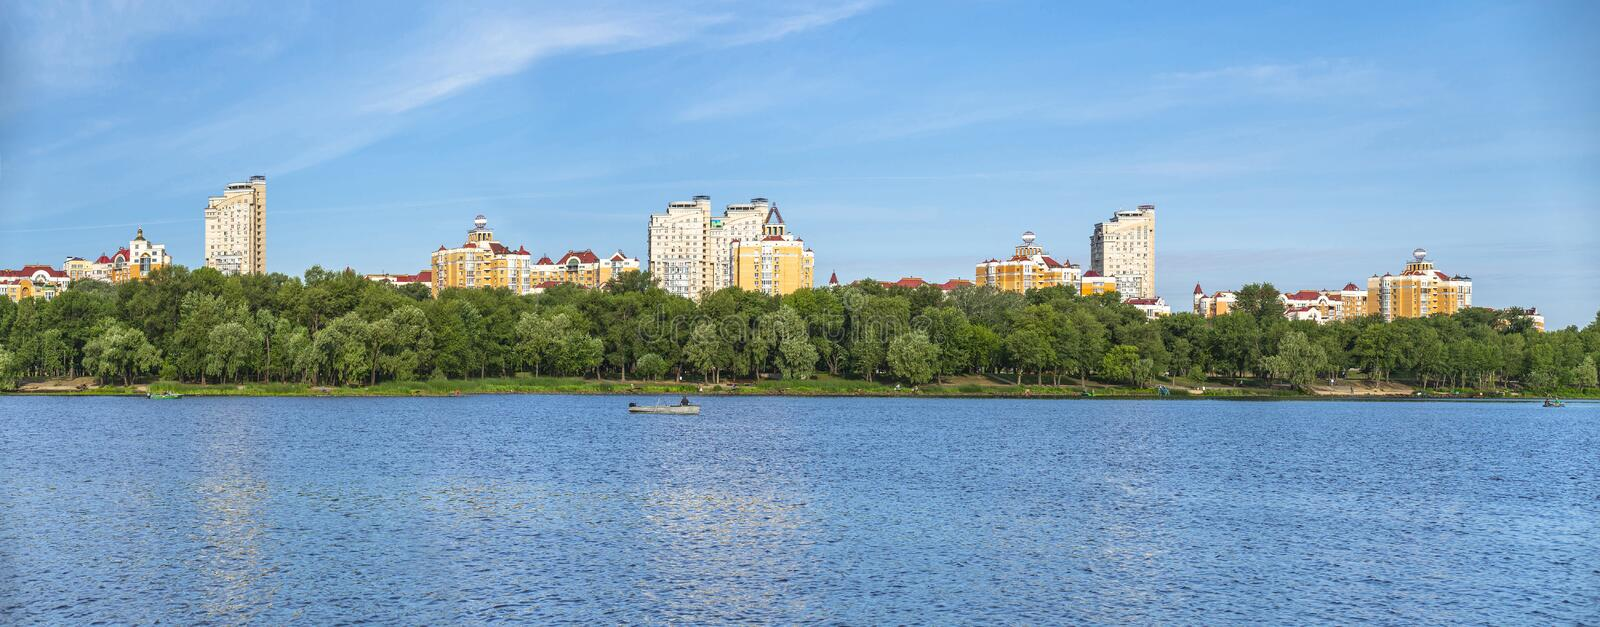 Kyiv Obolon embankment. View from water of Dnieper river.  stock images